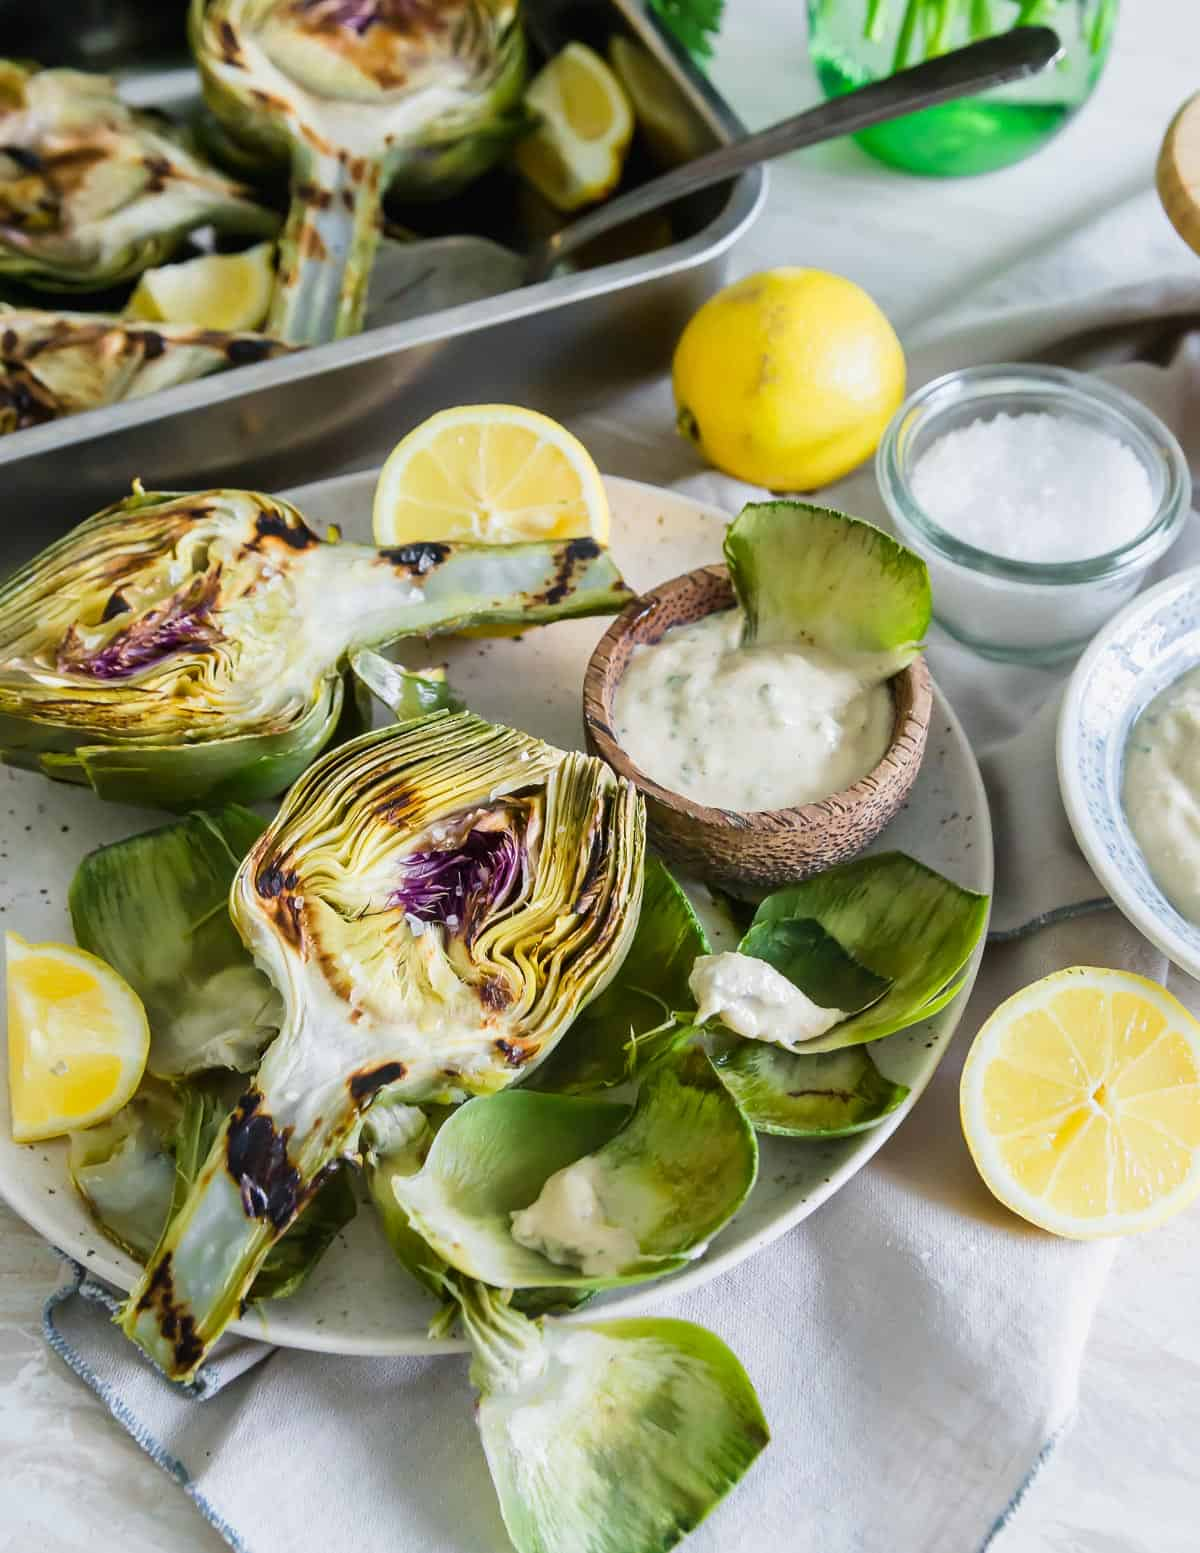 Grilling artichokes is a favorite easy way to enjoy one of the best vegetables spring has to offer.